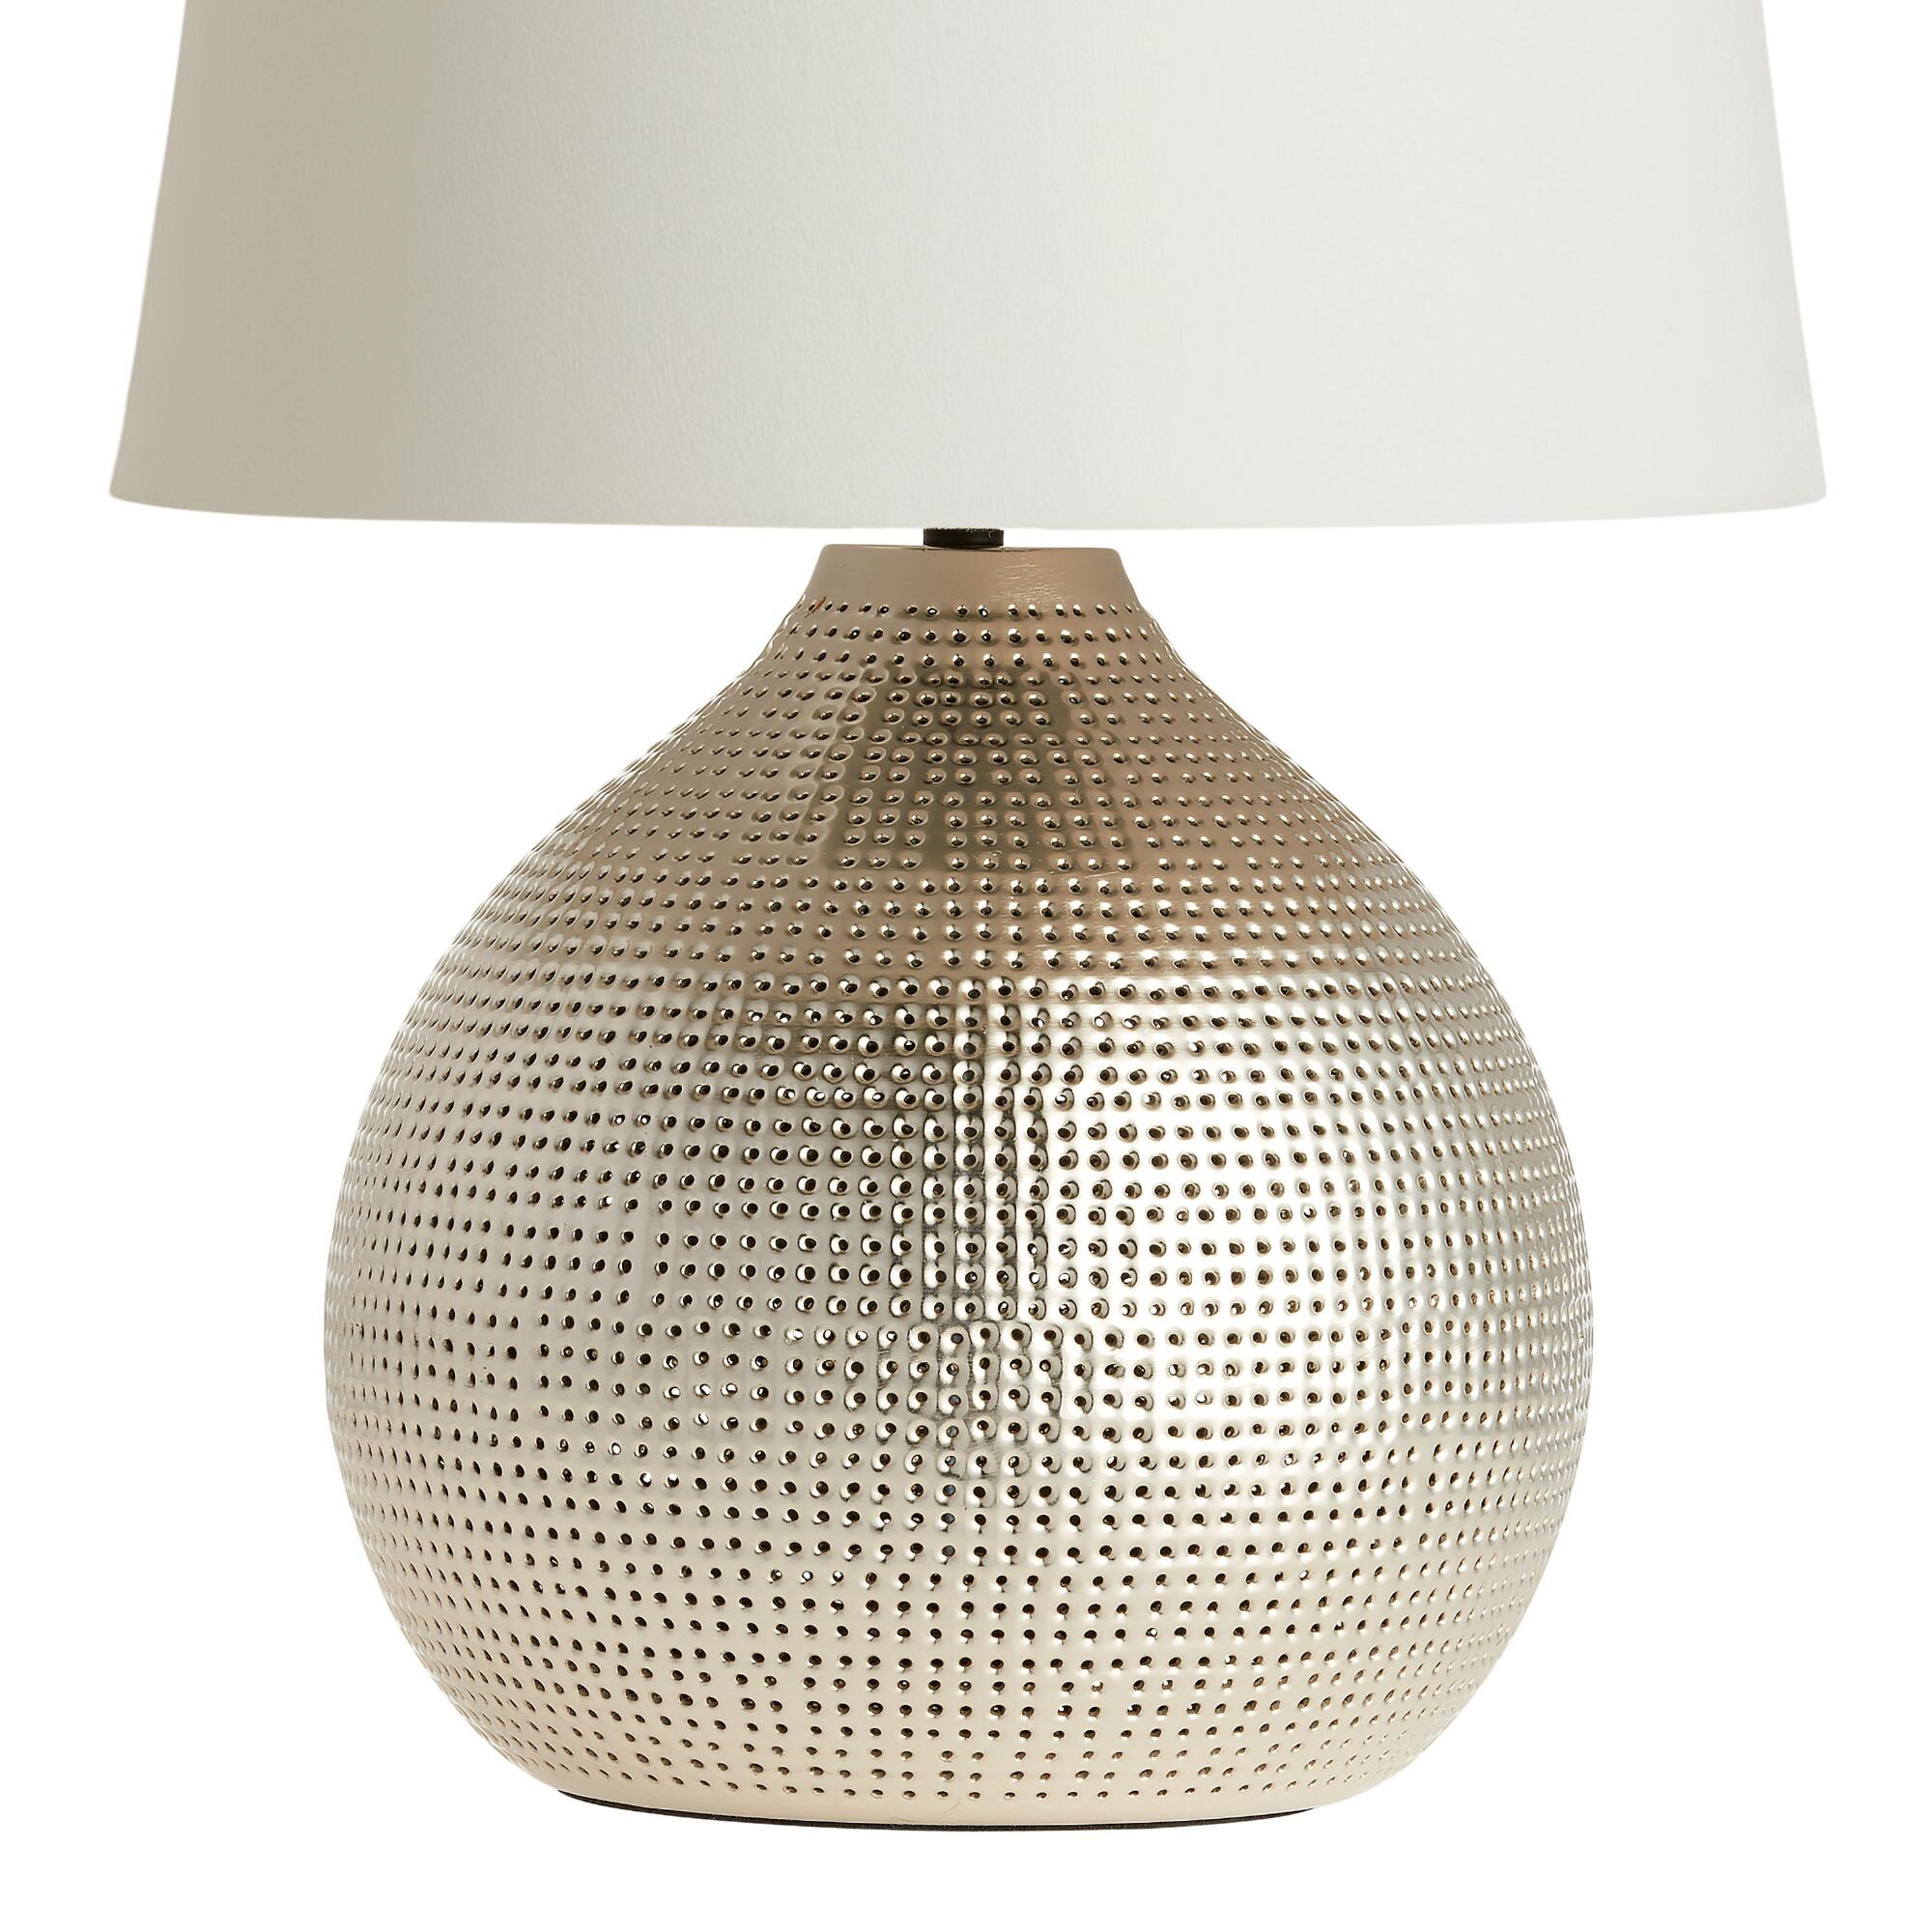 Pewter prema punched metal table lamp base world market for Images of table lamps